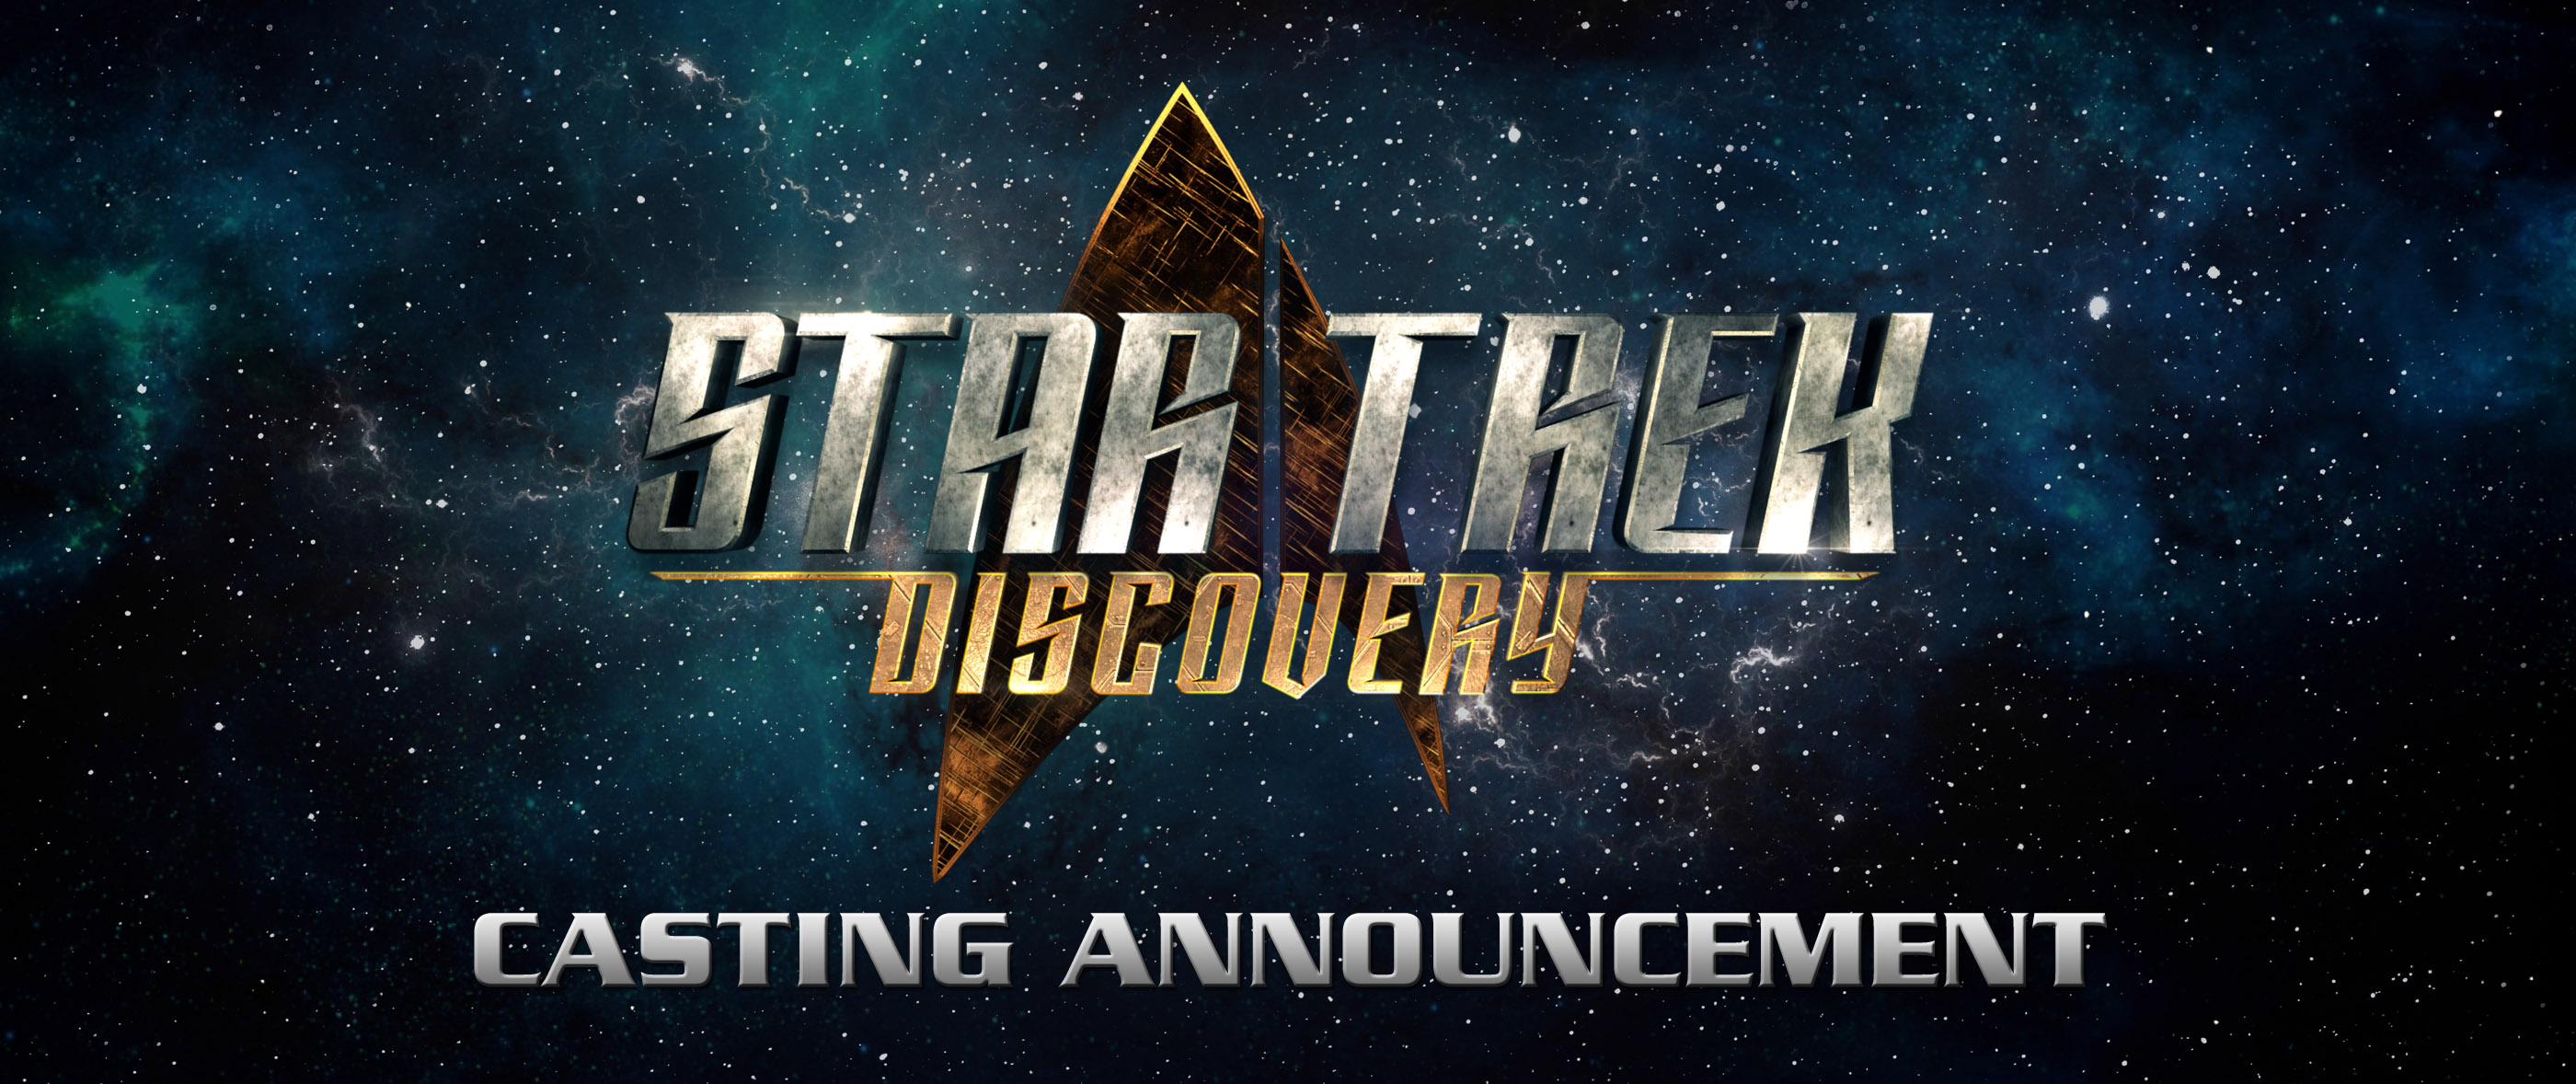 Star Trek Discovery  Official Trailer  YouTube